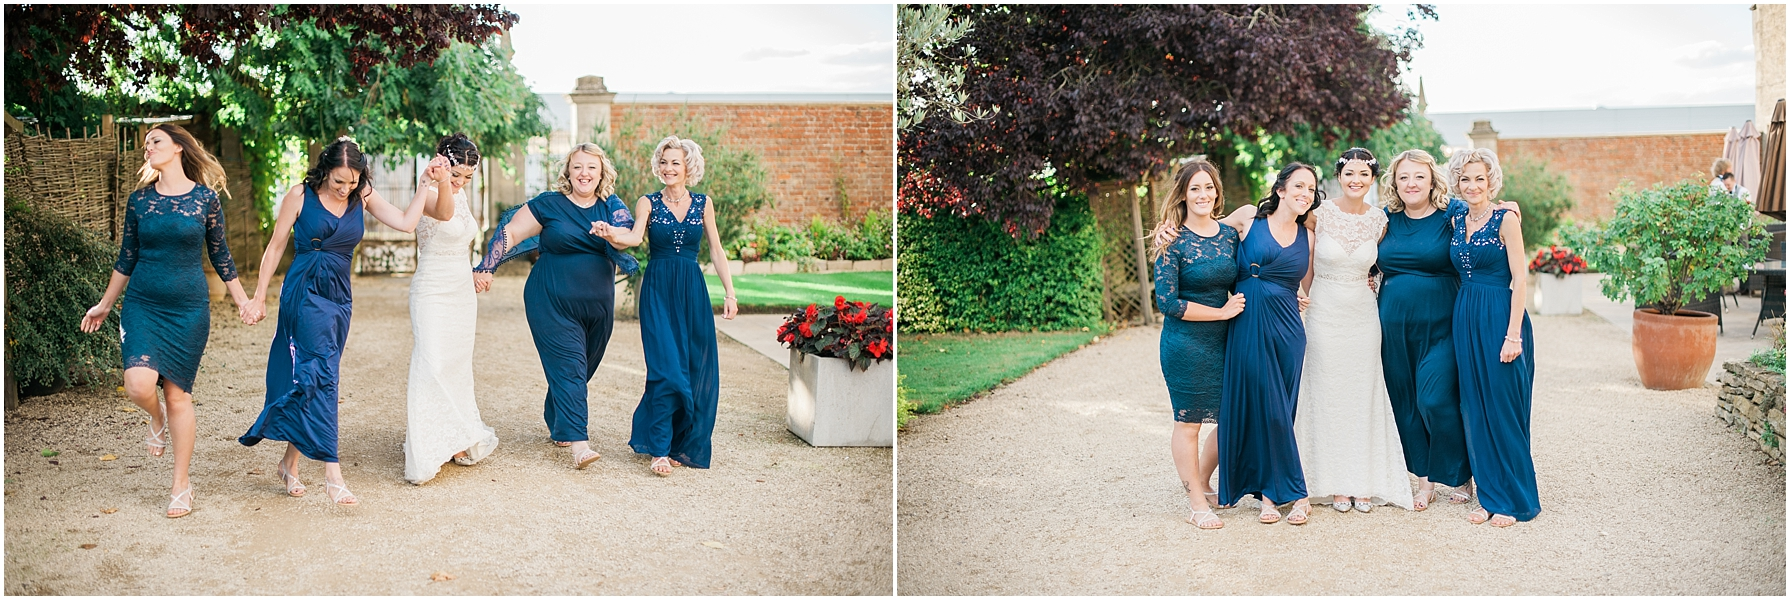 bride and bridesmaids walking hand in hand